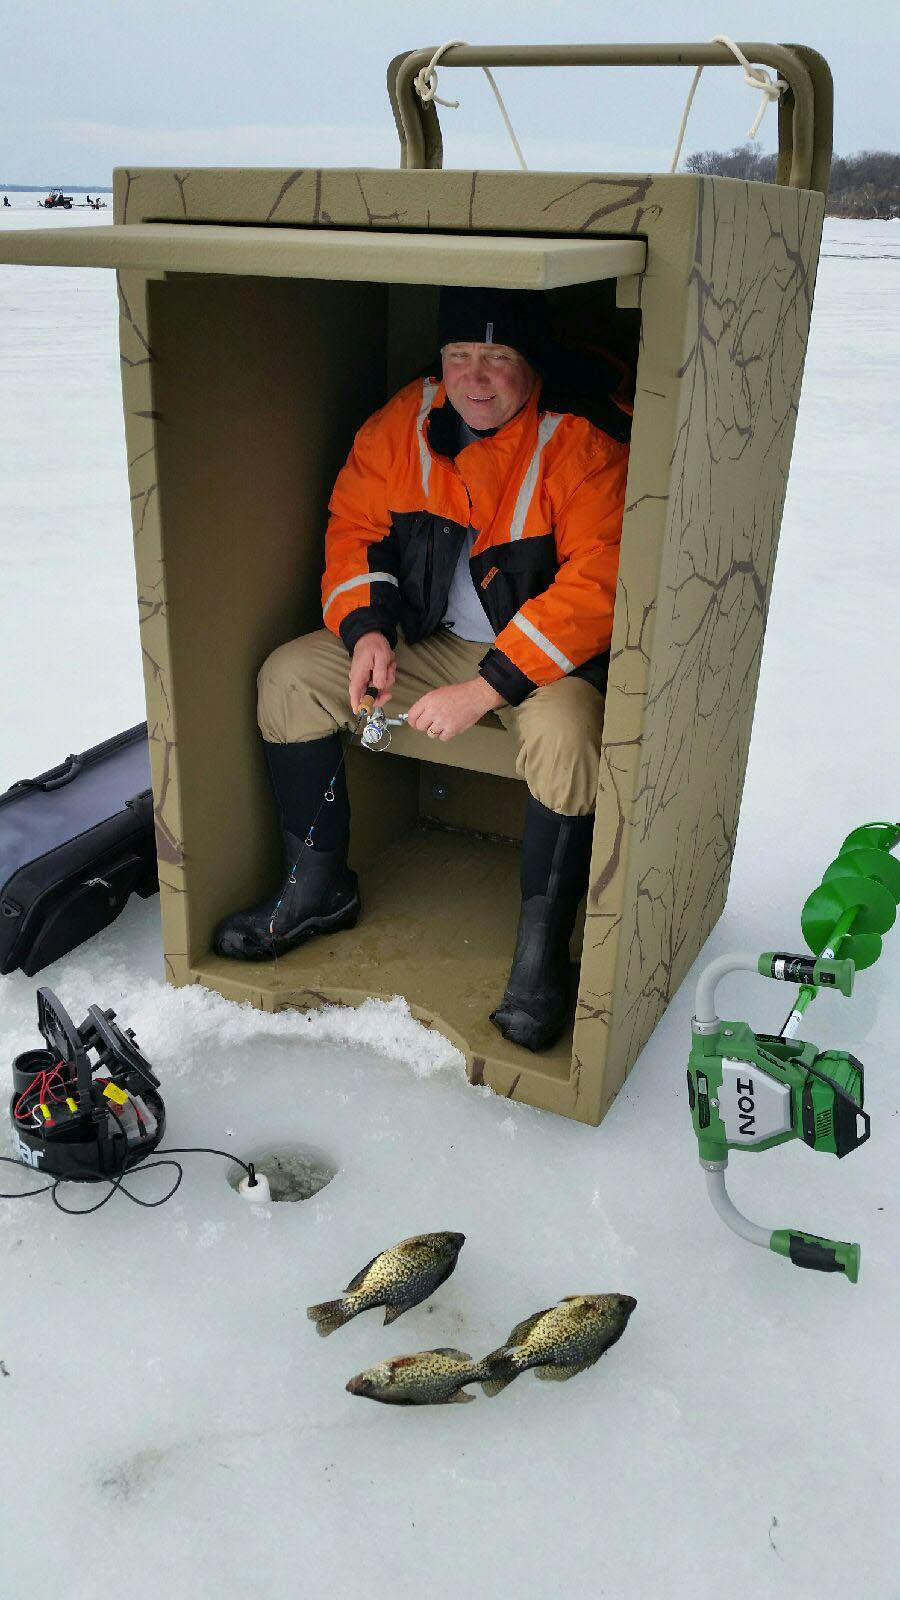 Ice fishing shanty rhino building products inc for New ice fishing gear 2017